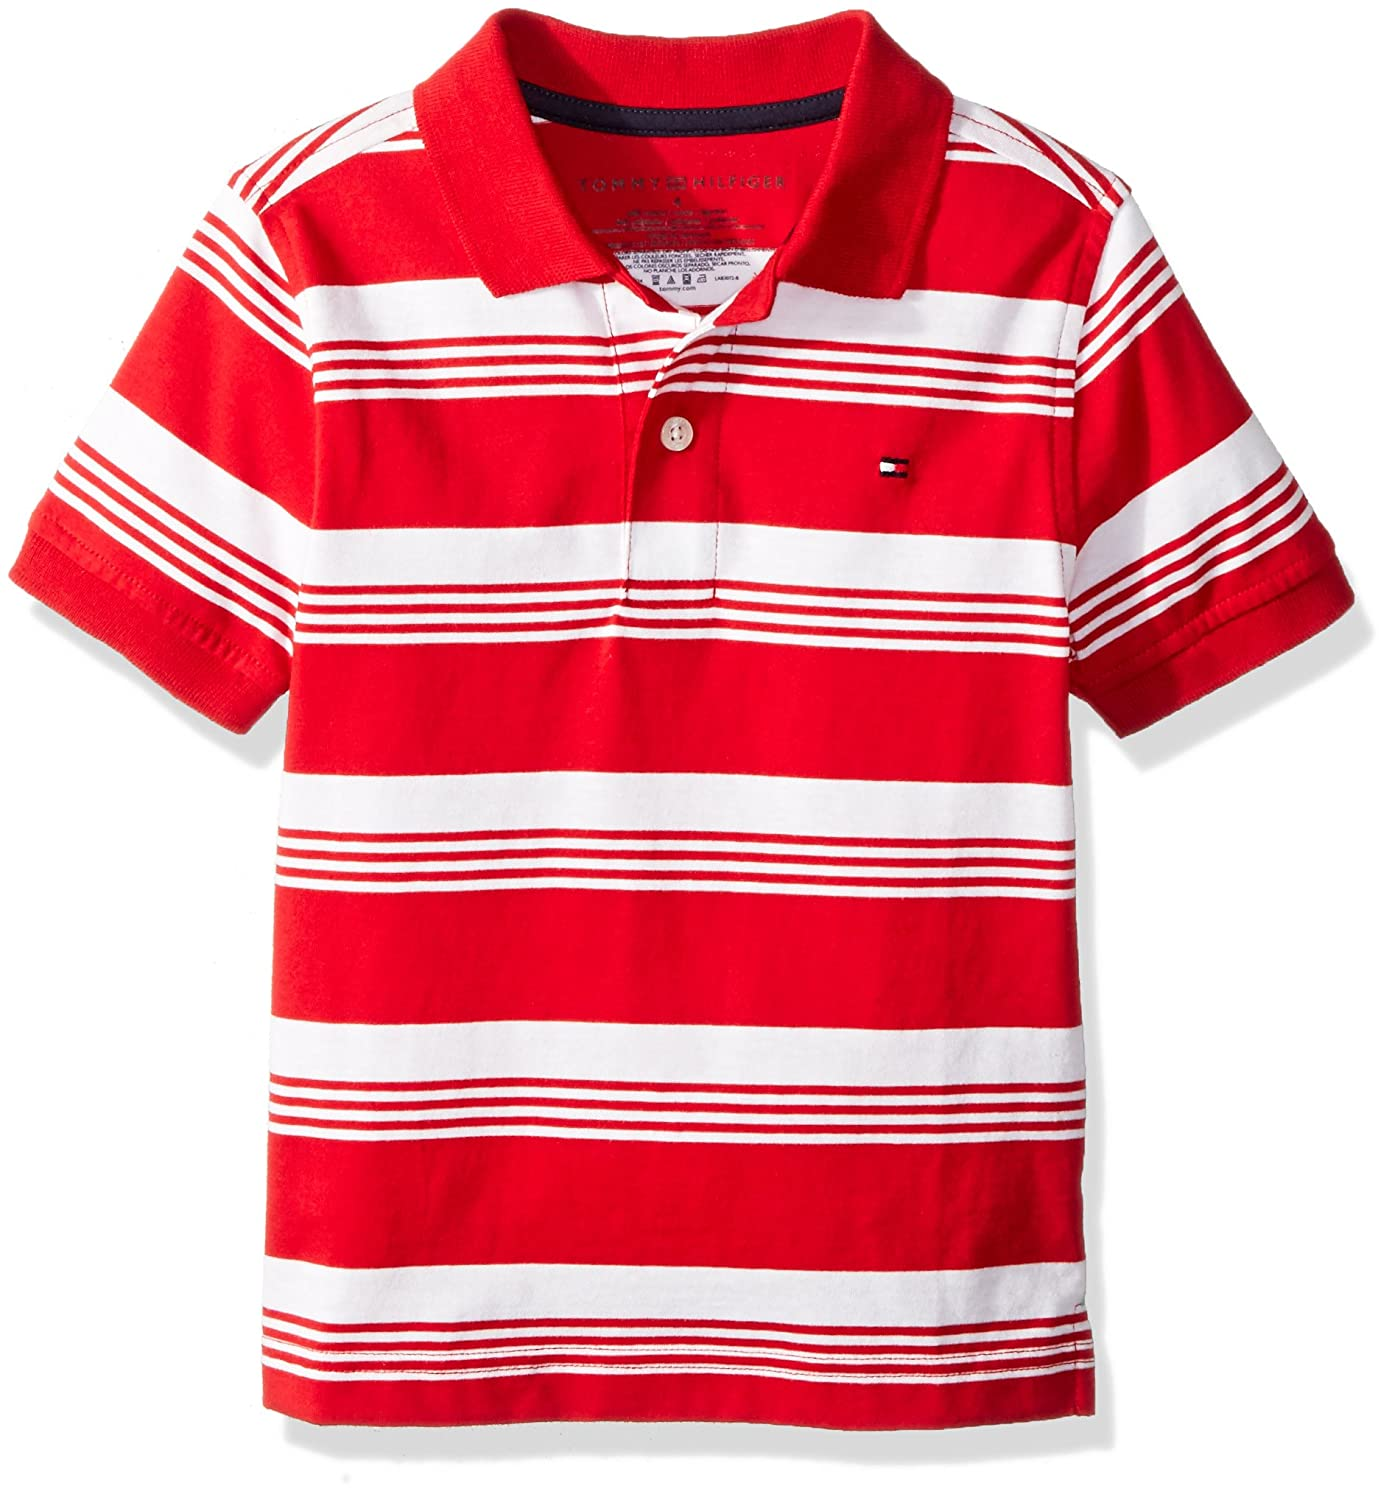 580f3b1b30 Online Cheap wholesale Tommy Hilfiger Boys Short Sleeve Striped Polo Shirt  Polos Suppliers